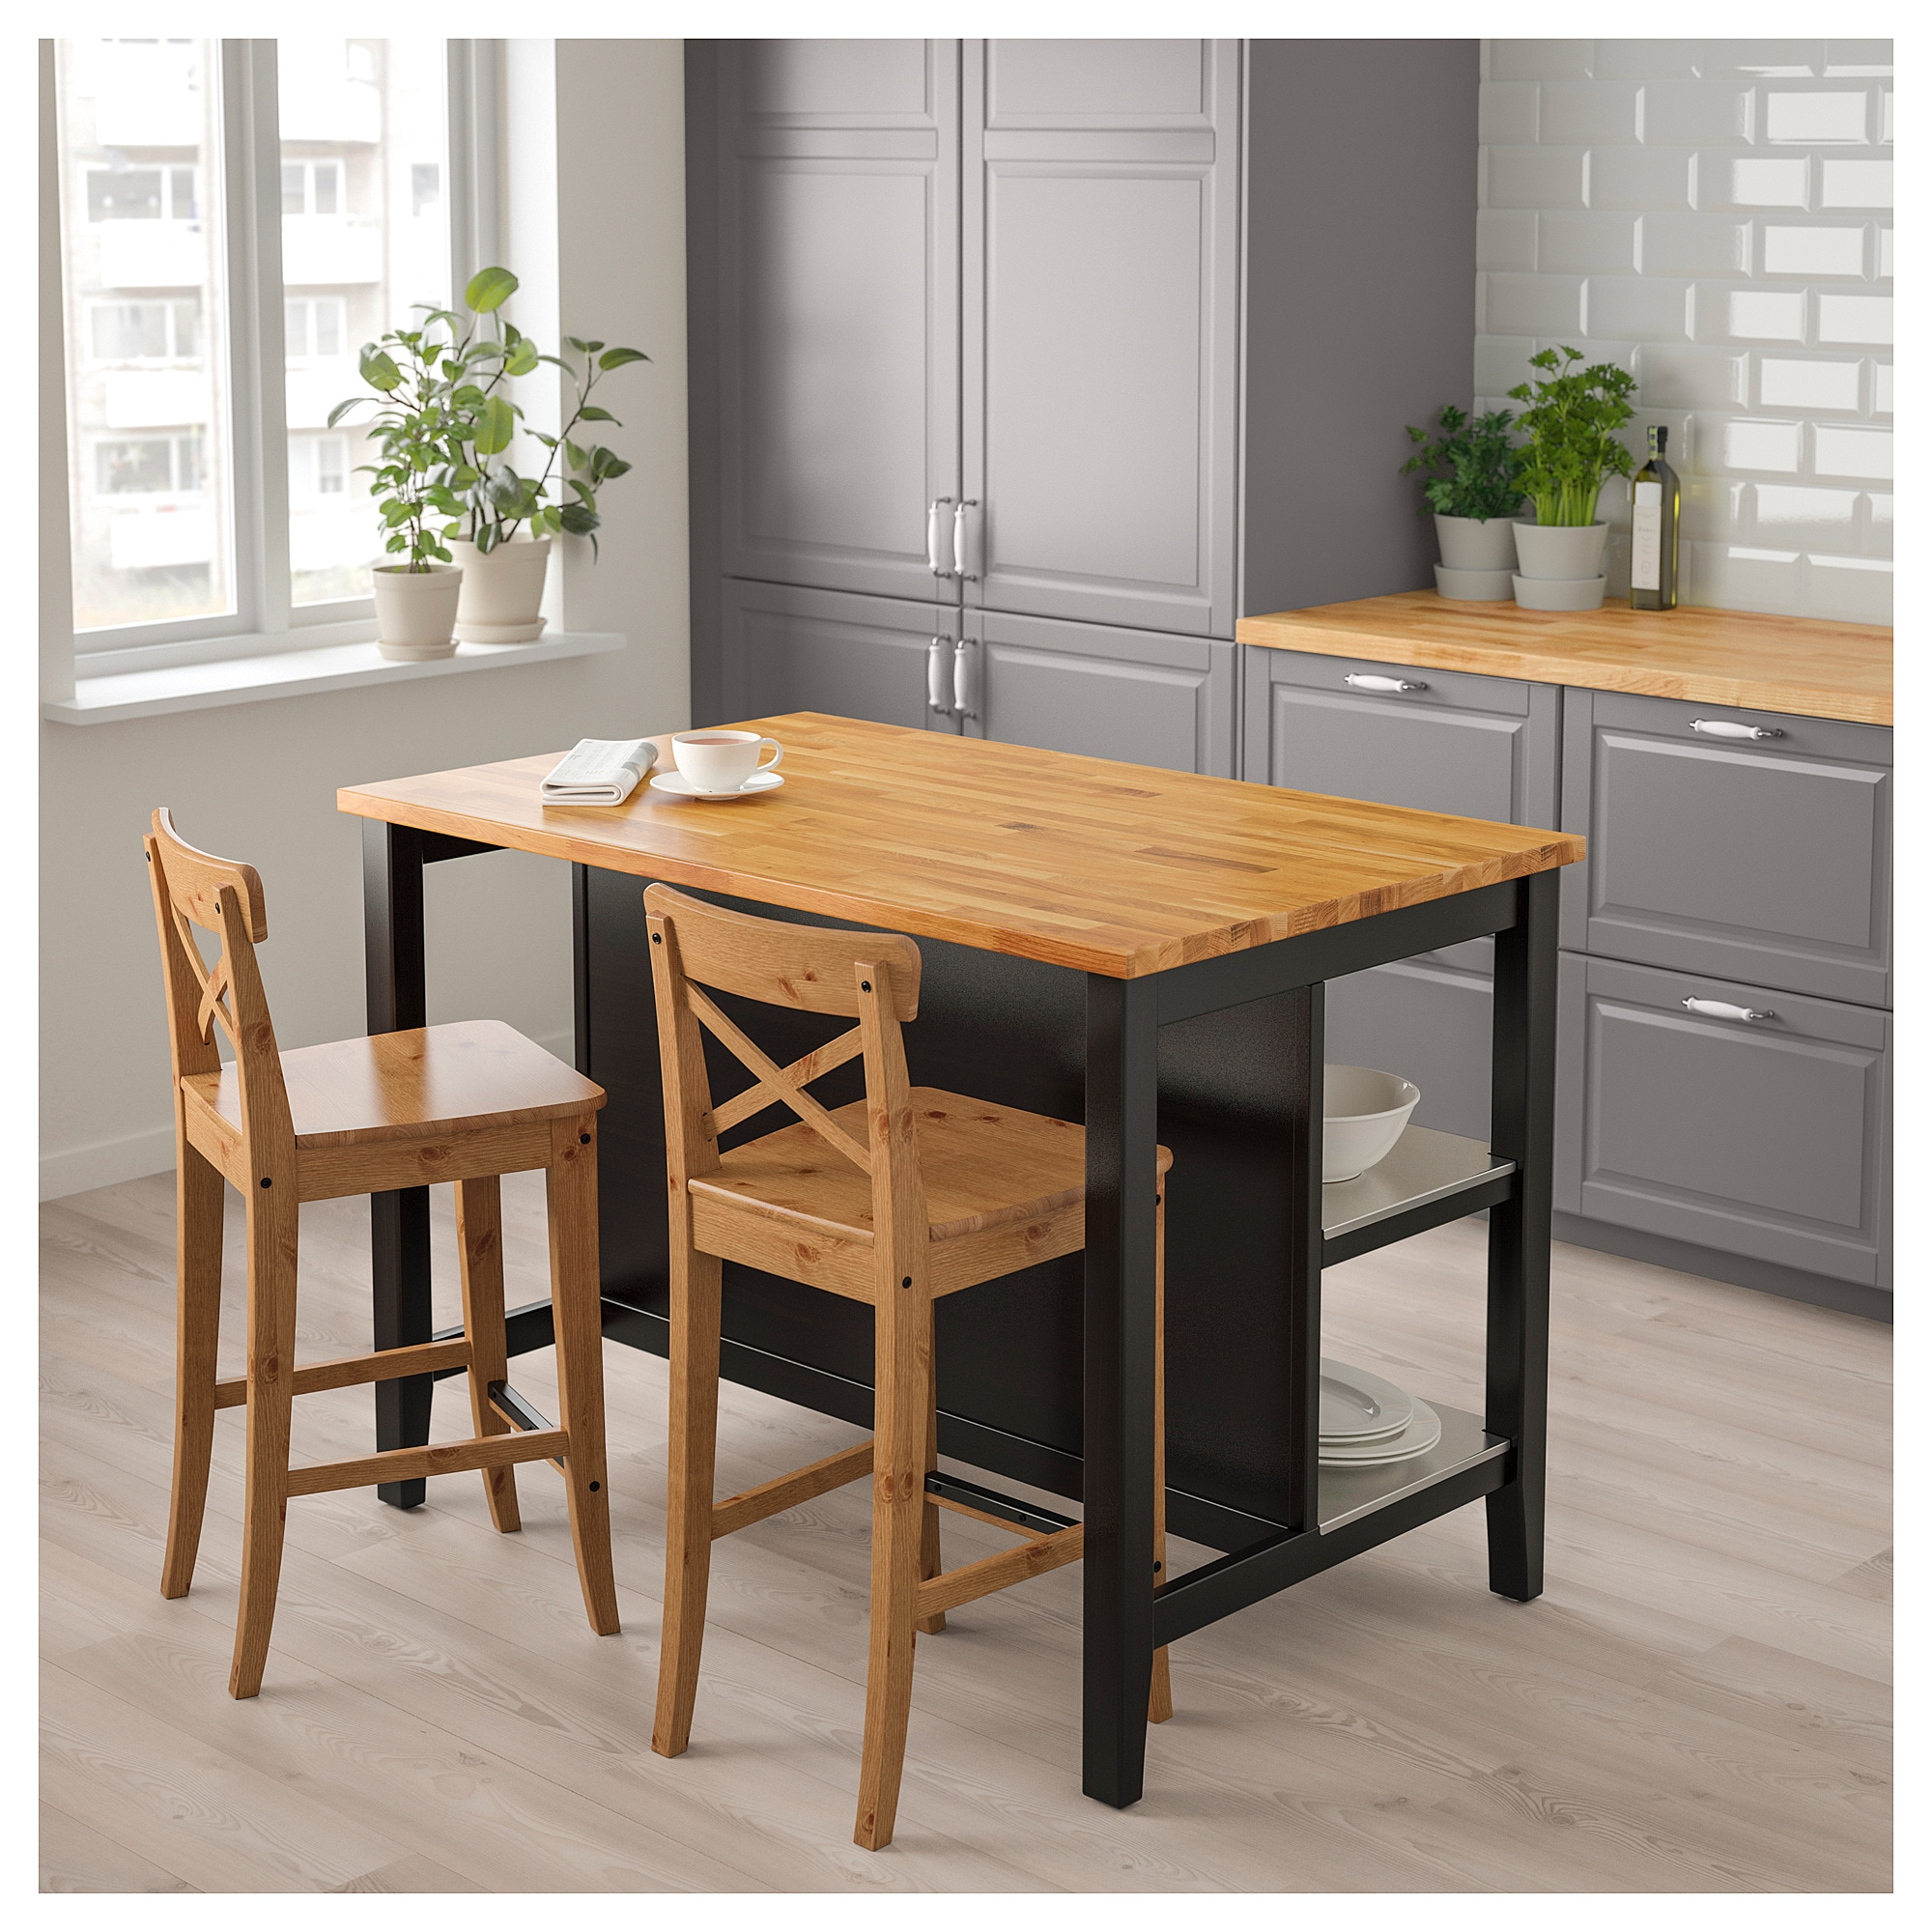 island ikea dining kitchen img table hackers